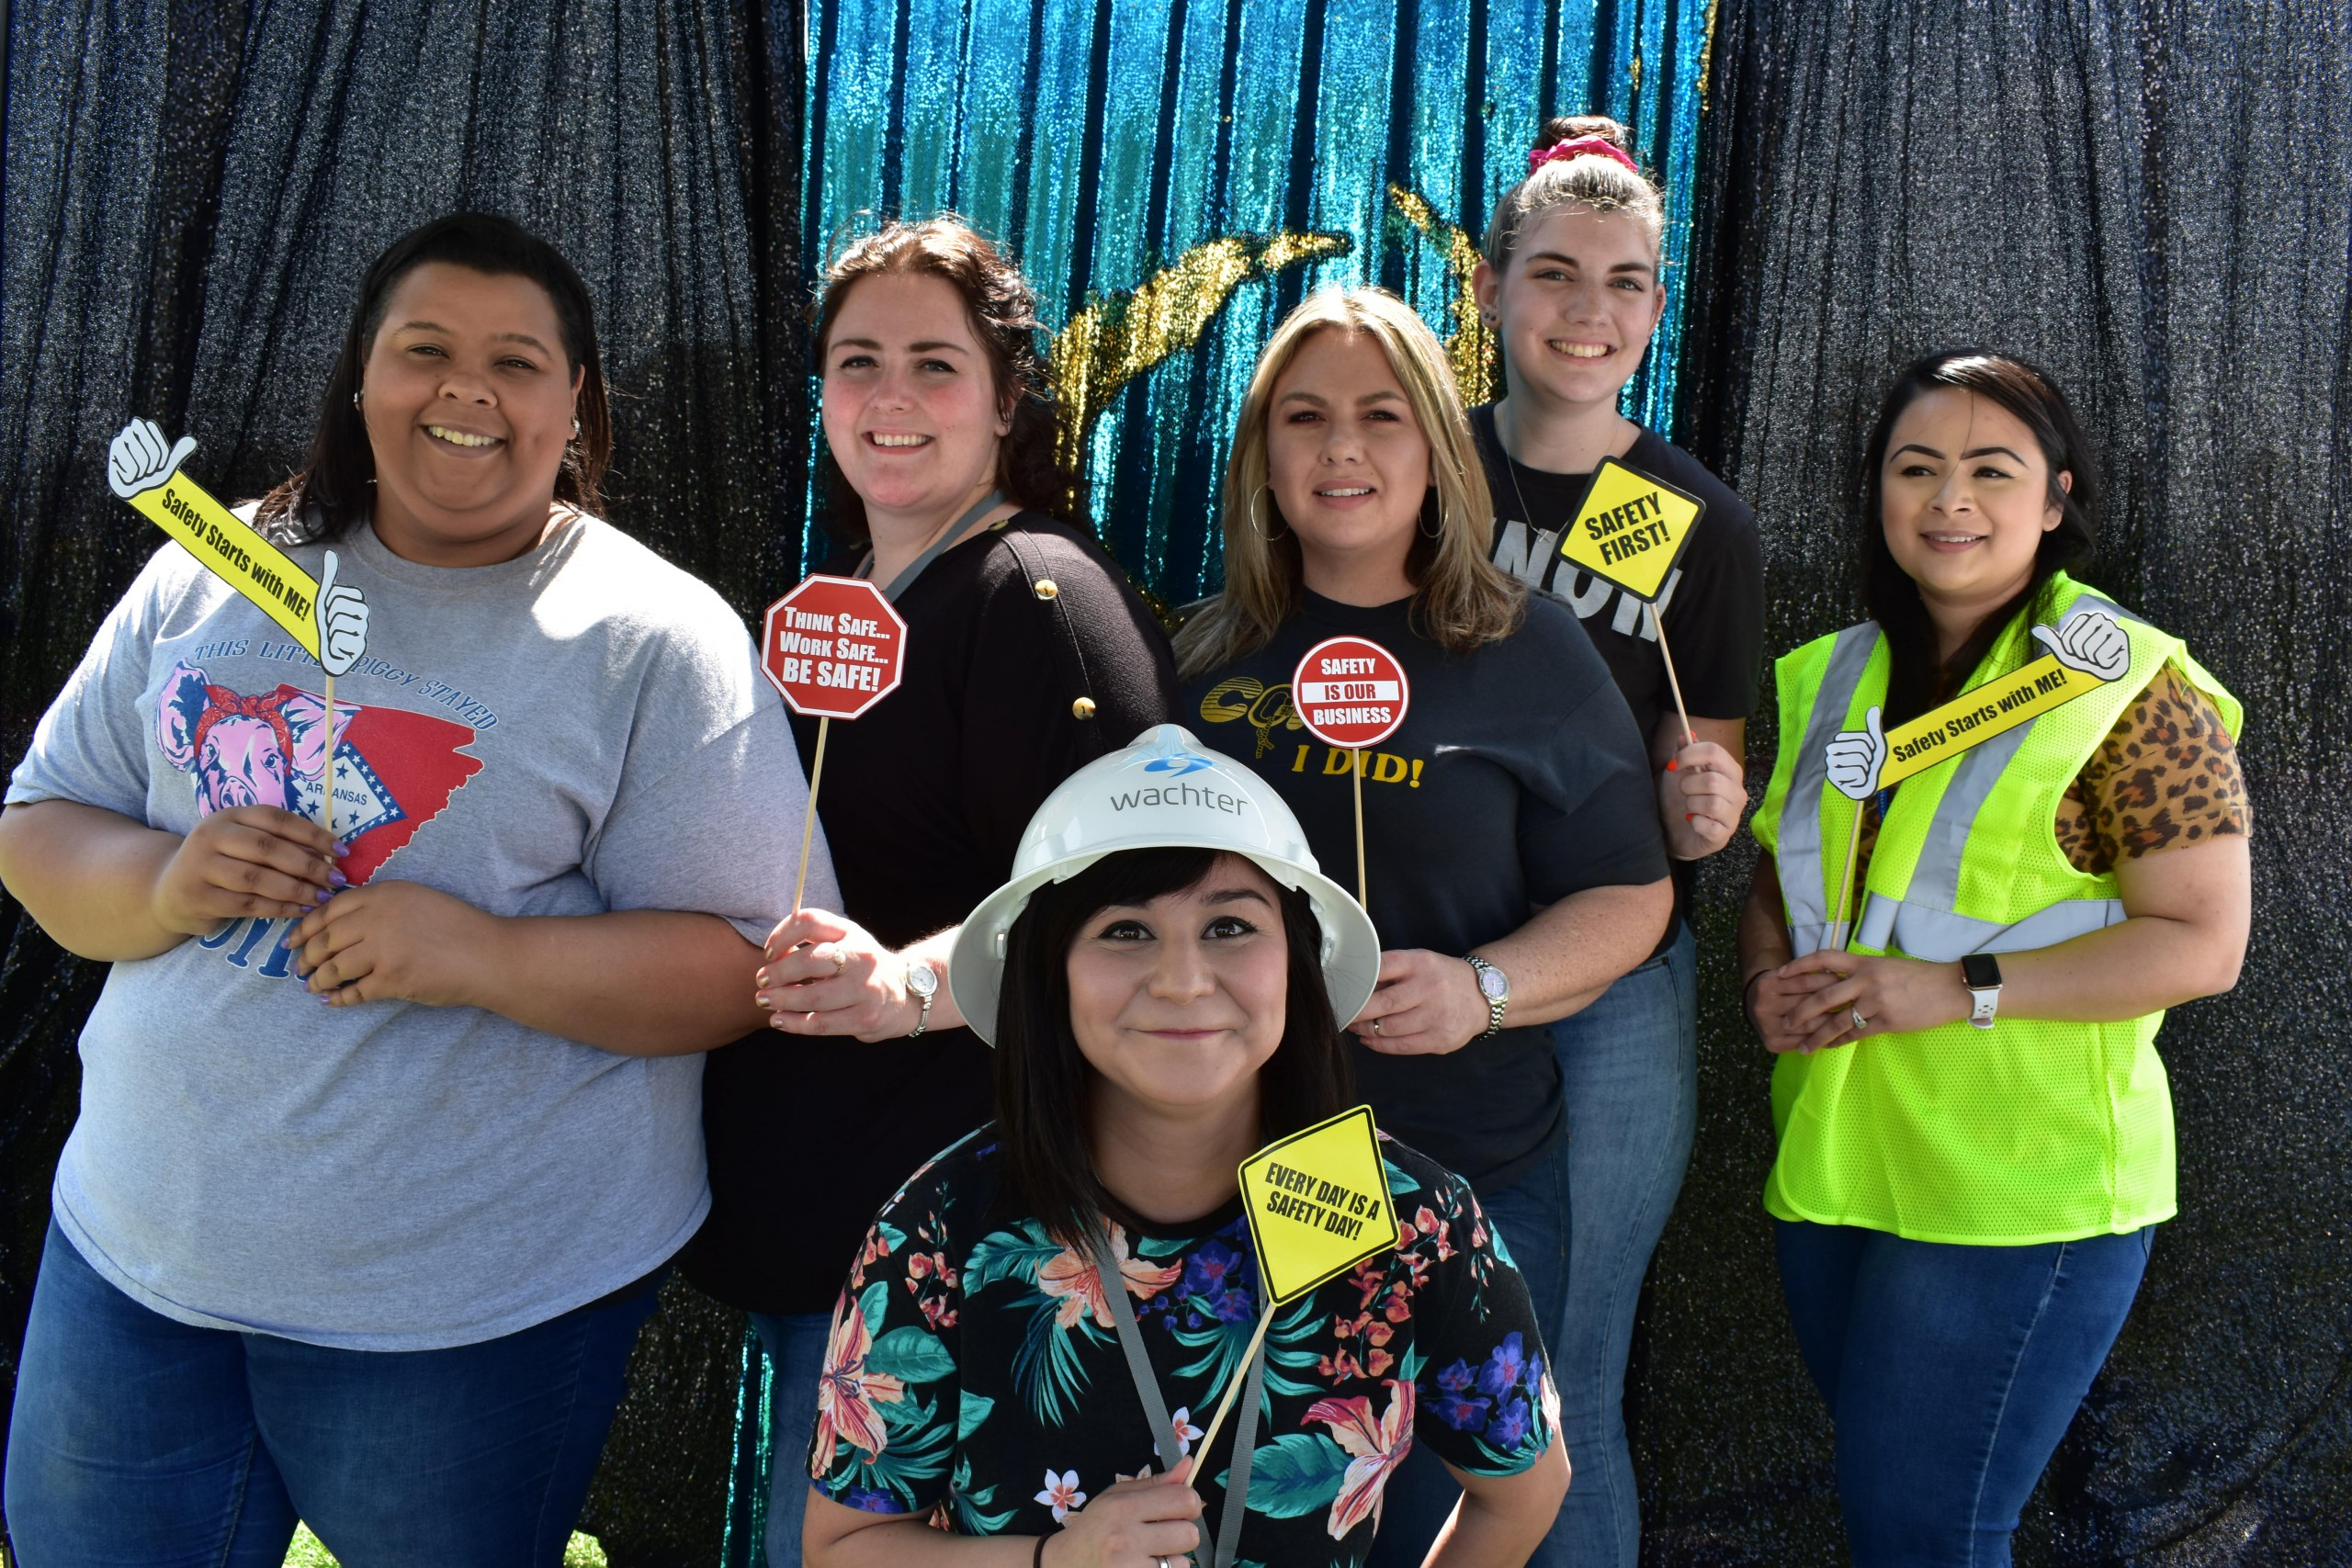 Wachter Employees Safety Picture Booth